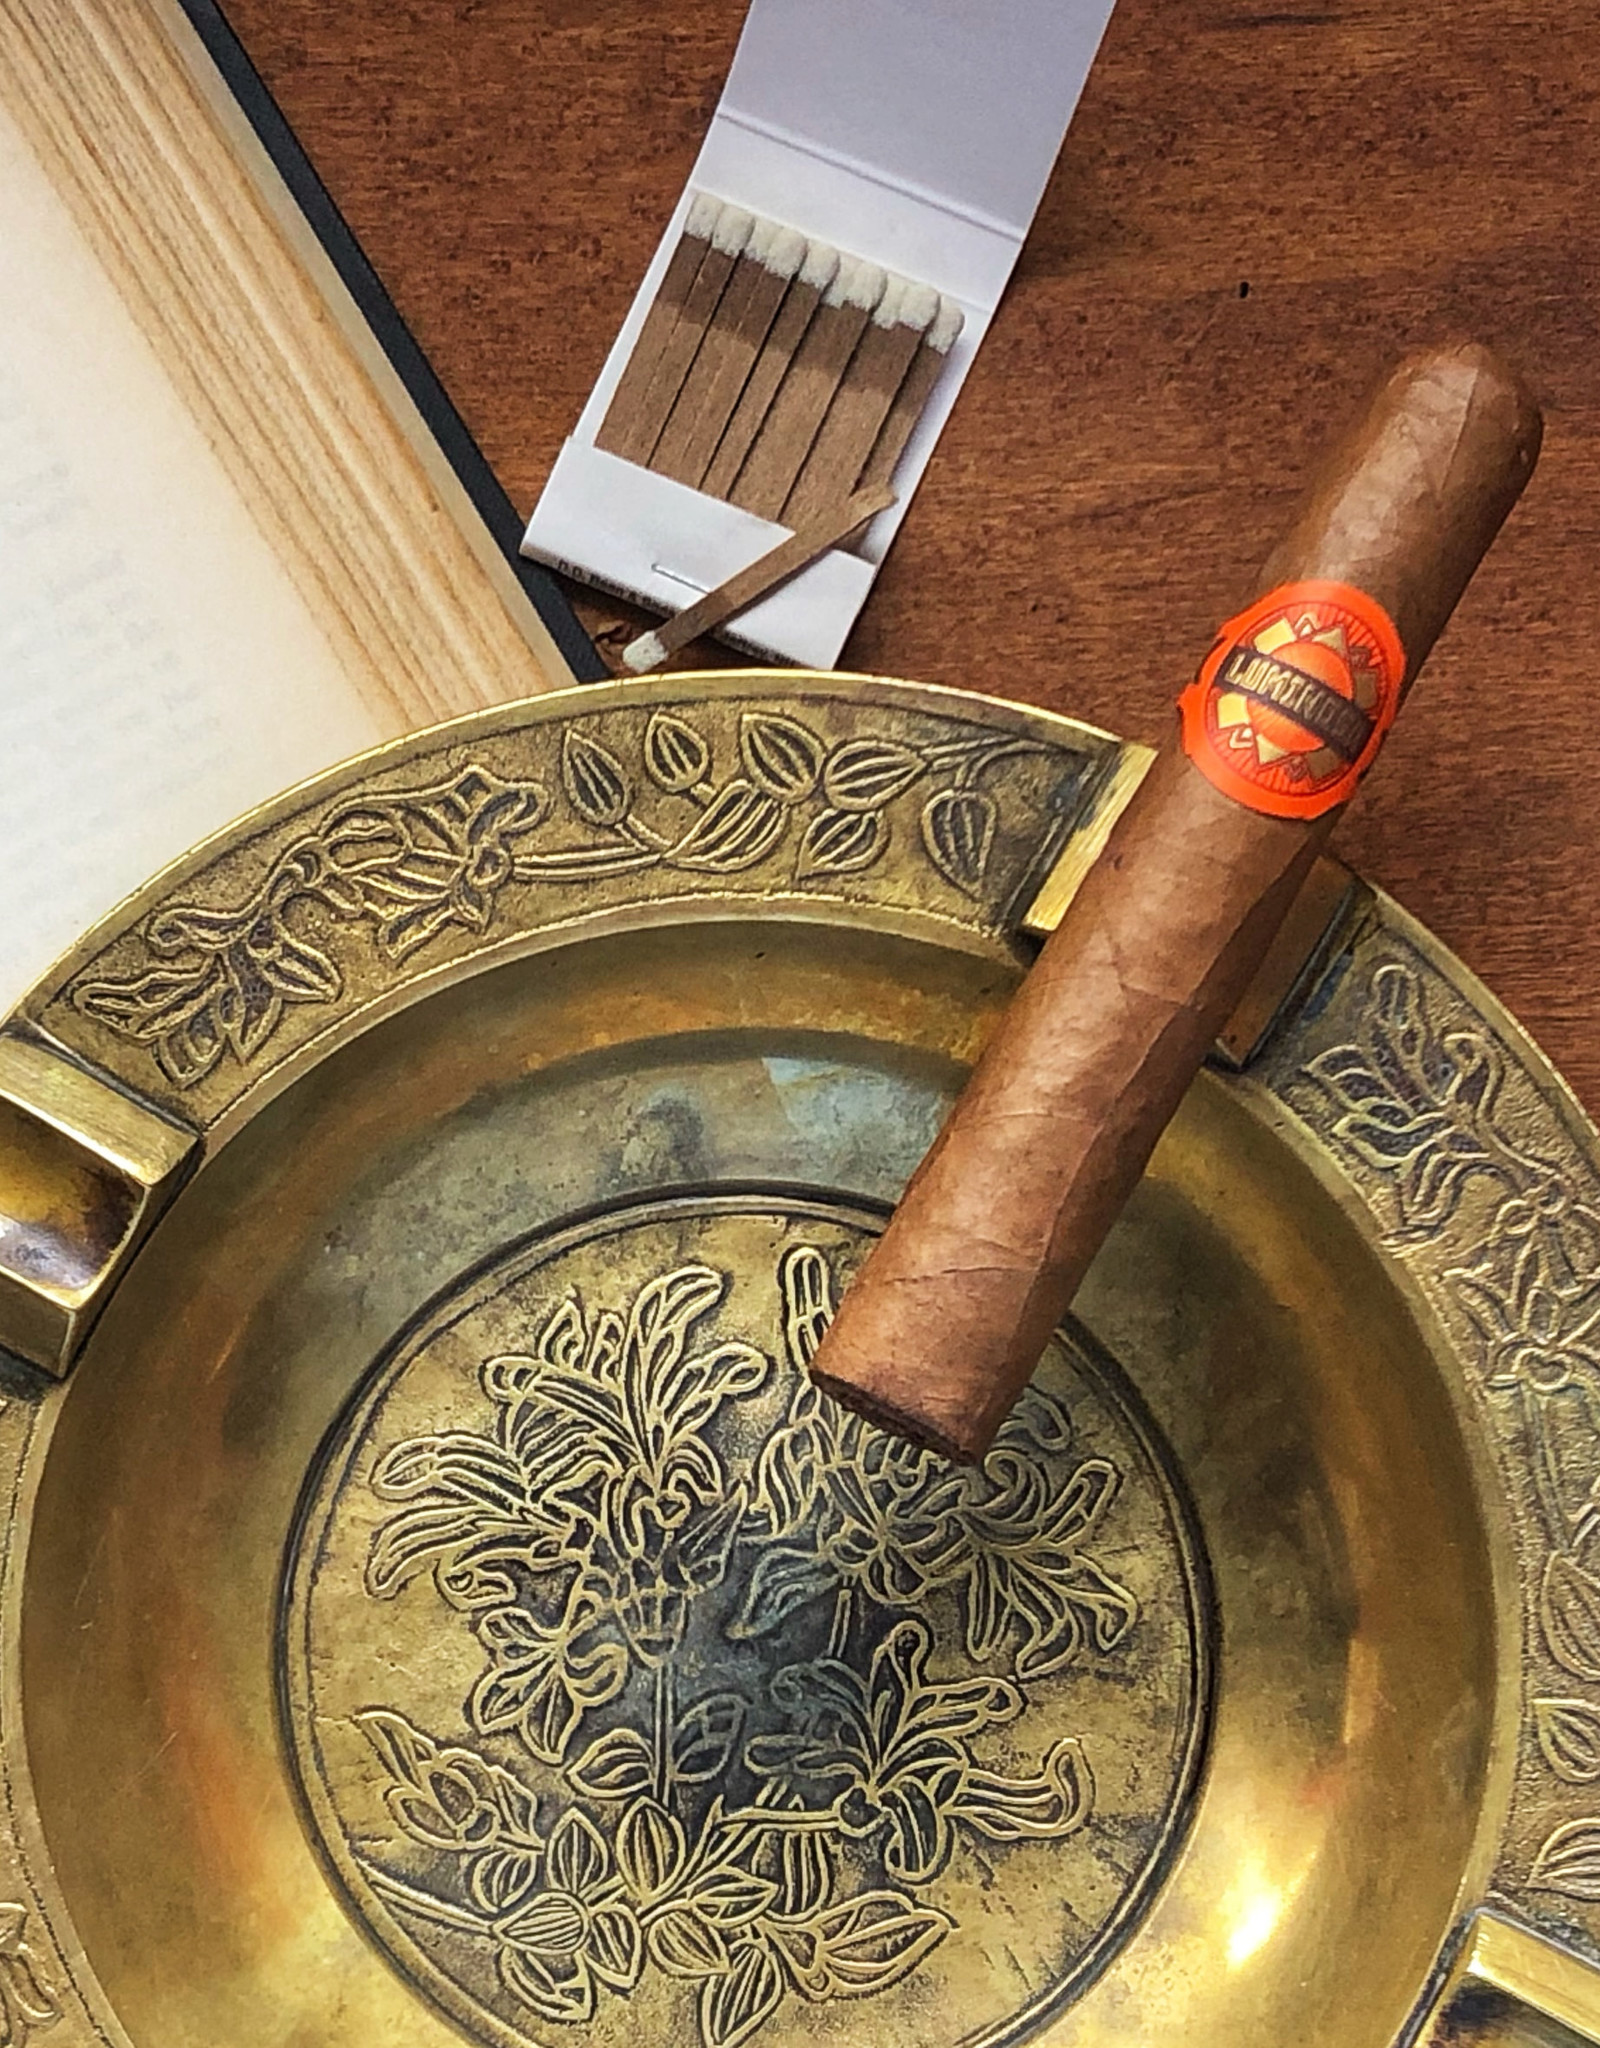 Crowned Heads Crowned Heads Luminosa Robusto 5 x 50 Single